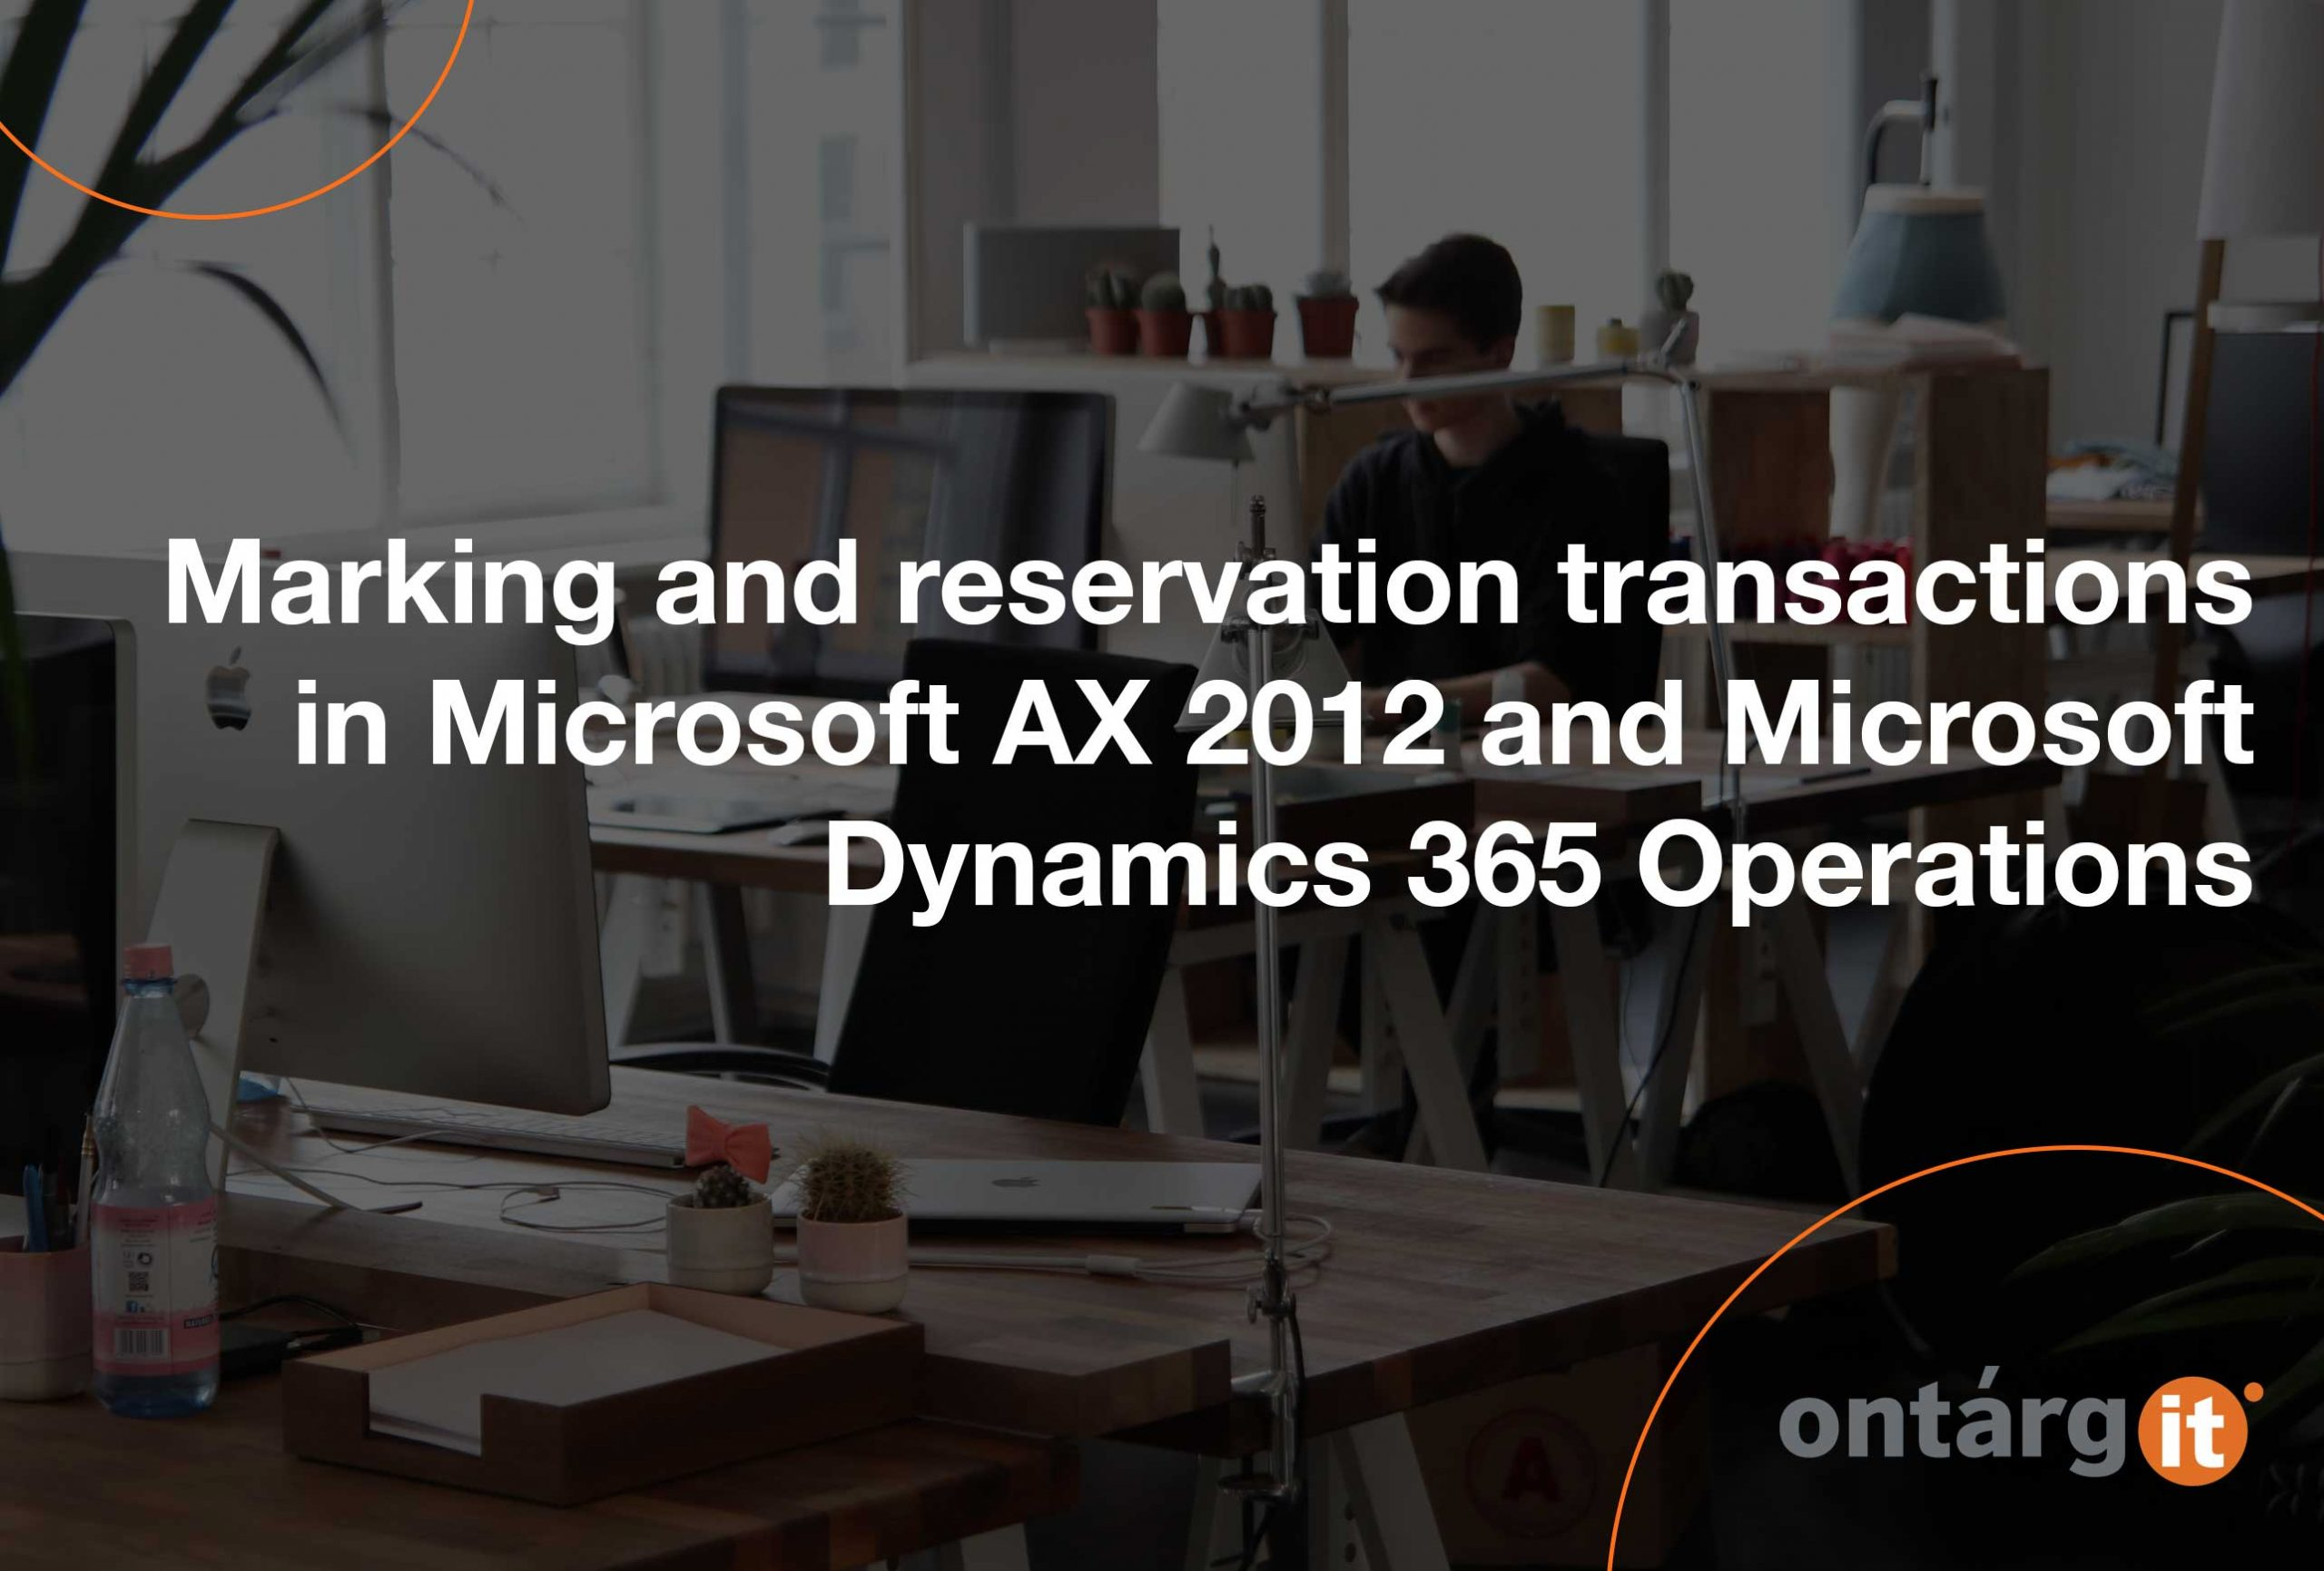 Marking-and-reservation-transactions-in-AX-2012-and-D365O